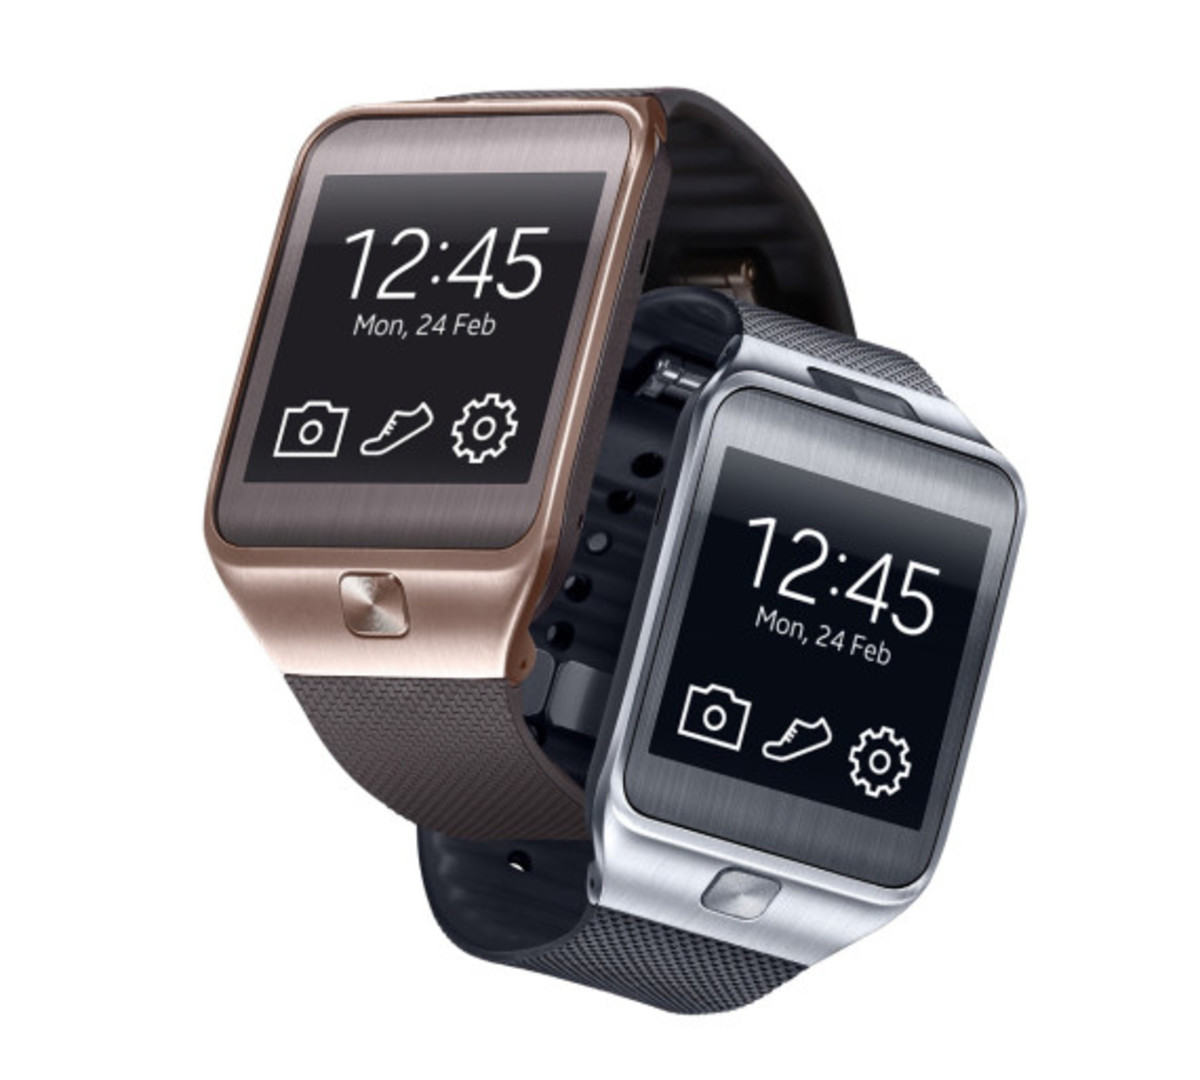 samsung-introduces-gear-2-and-gear-2-neo-smartwatches-02